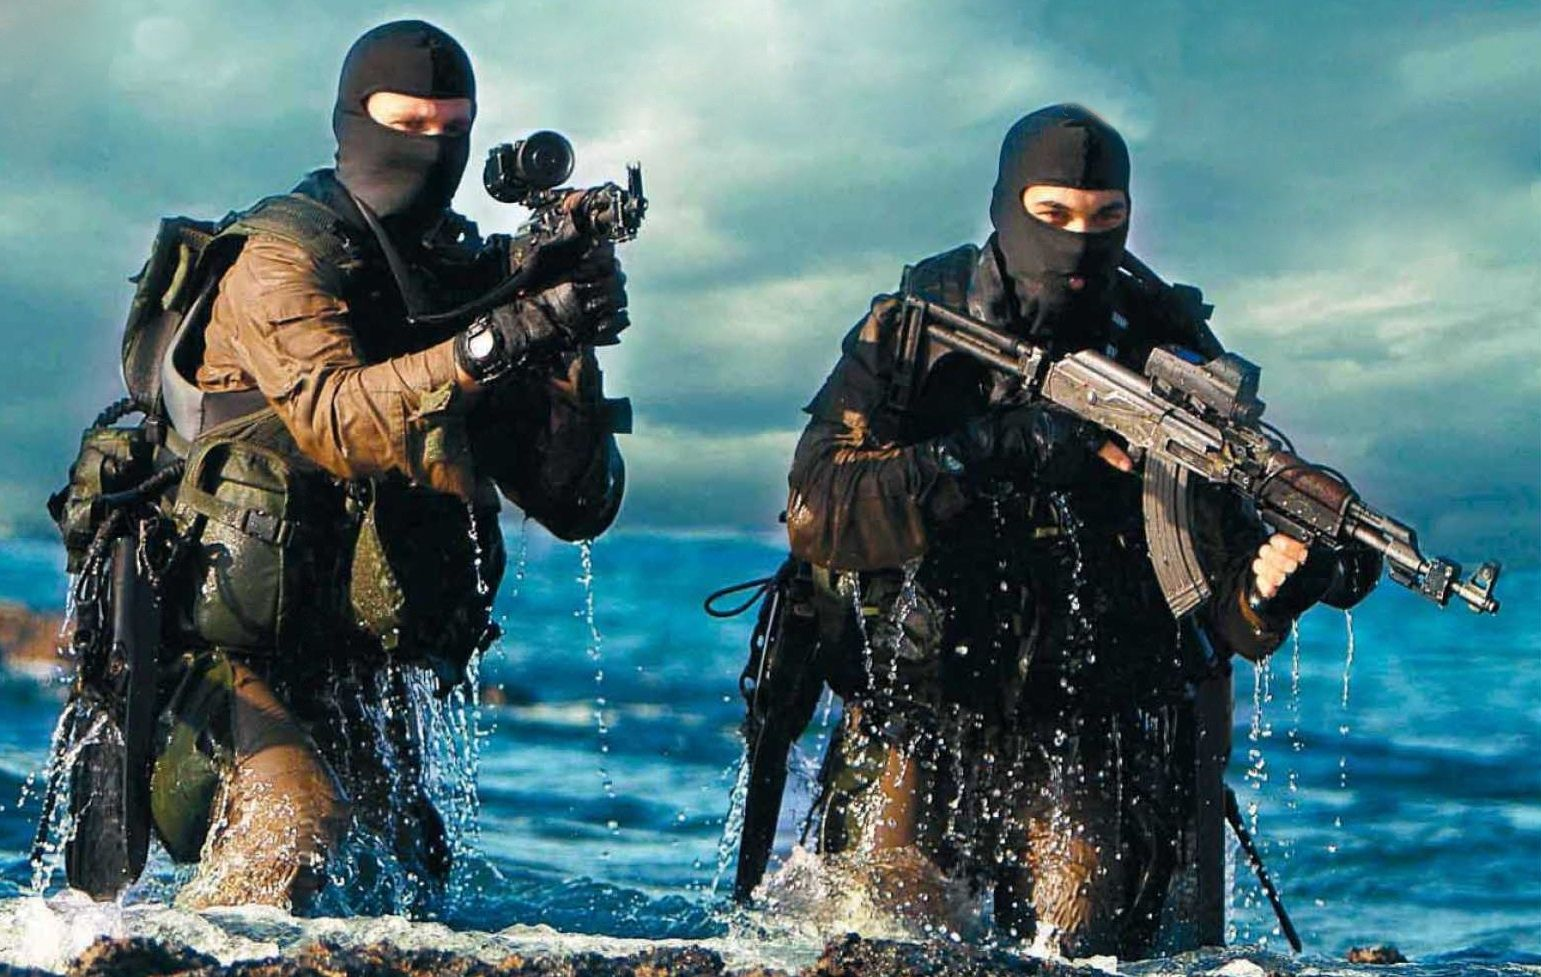 Israeli special forces weapons